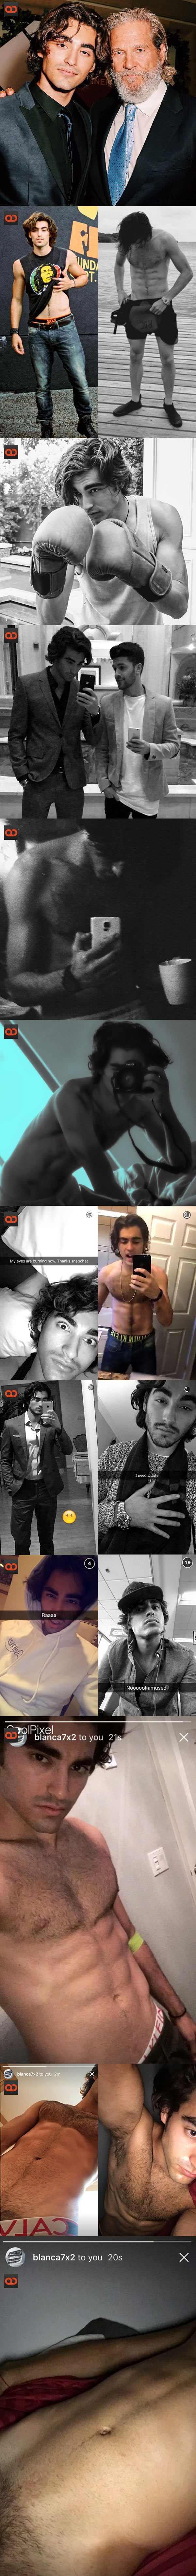 Blake Michael, Disney Actor And True Blood Star, Cock Exposed In Alleged Snapchat Photos!